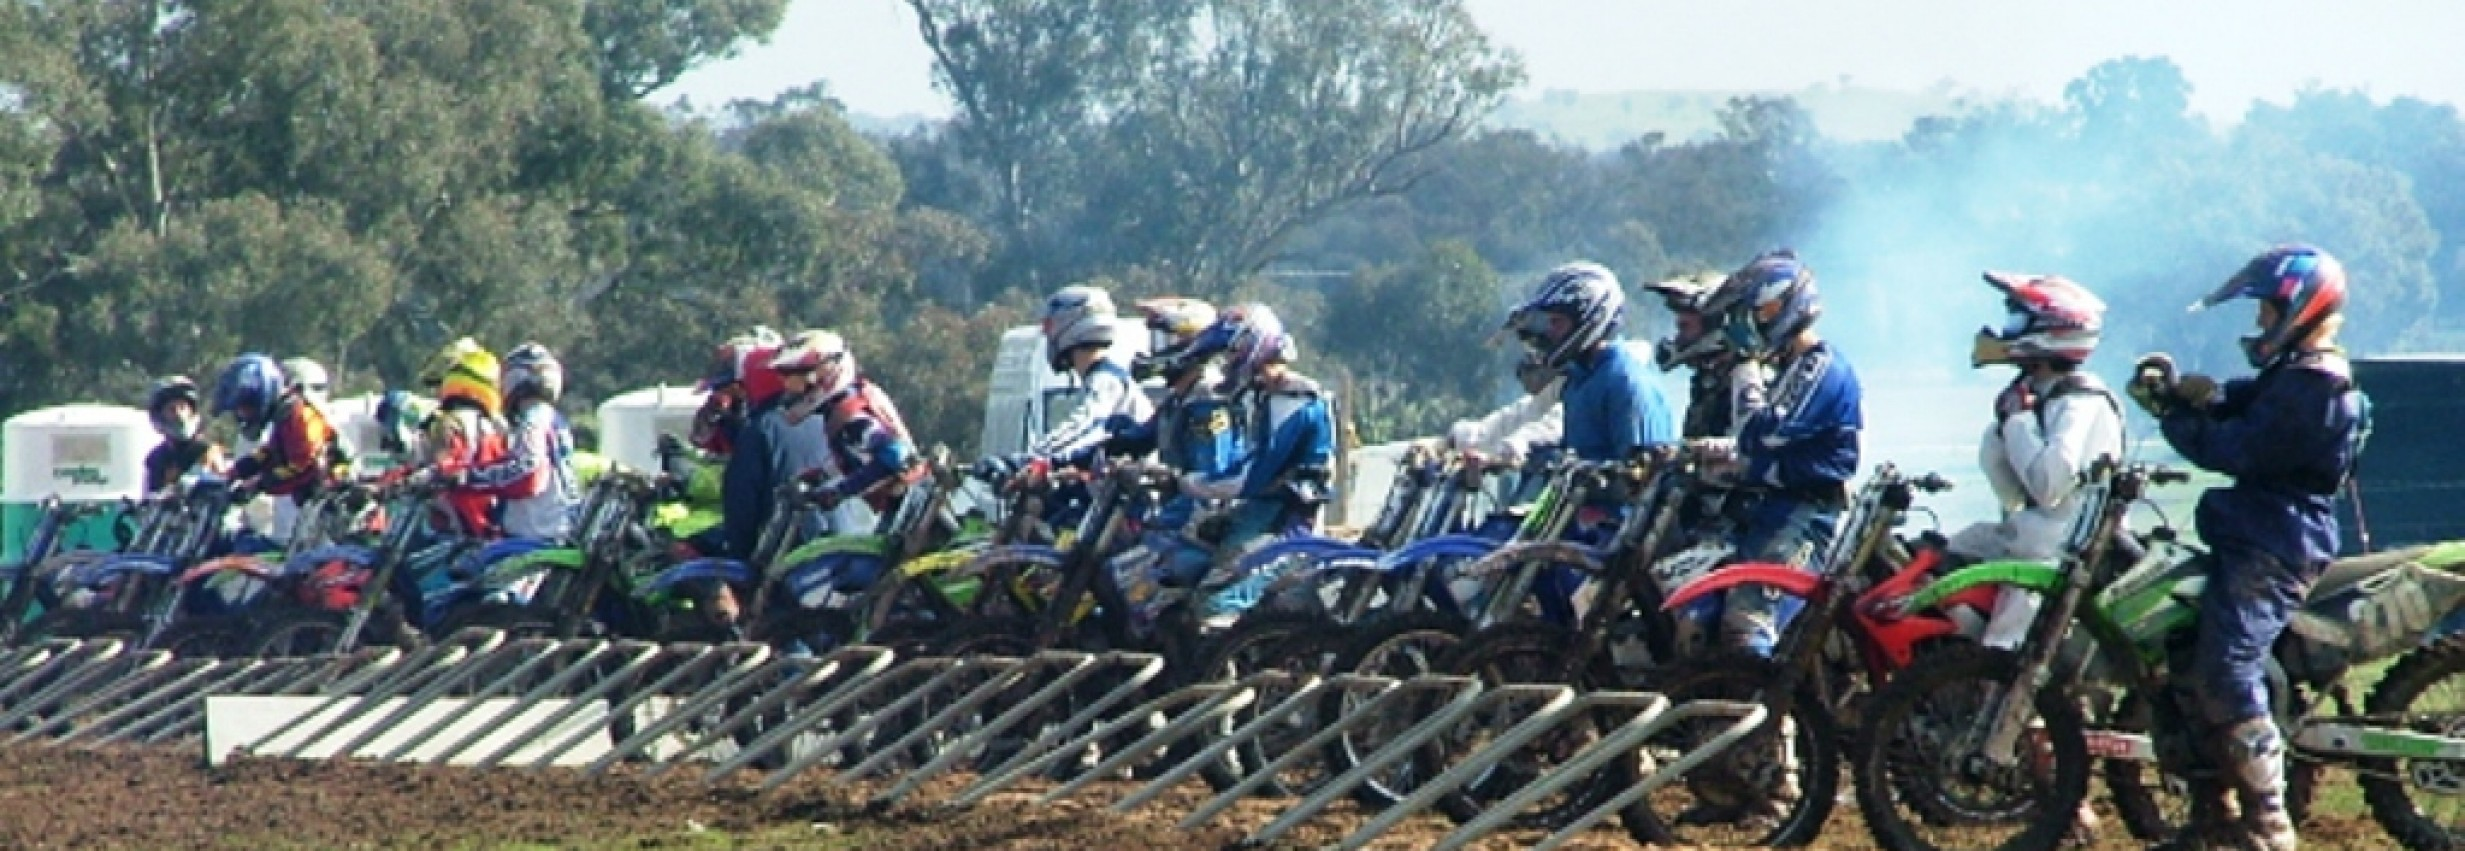 Holbrook Motorcycle Sports Club